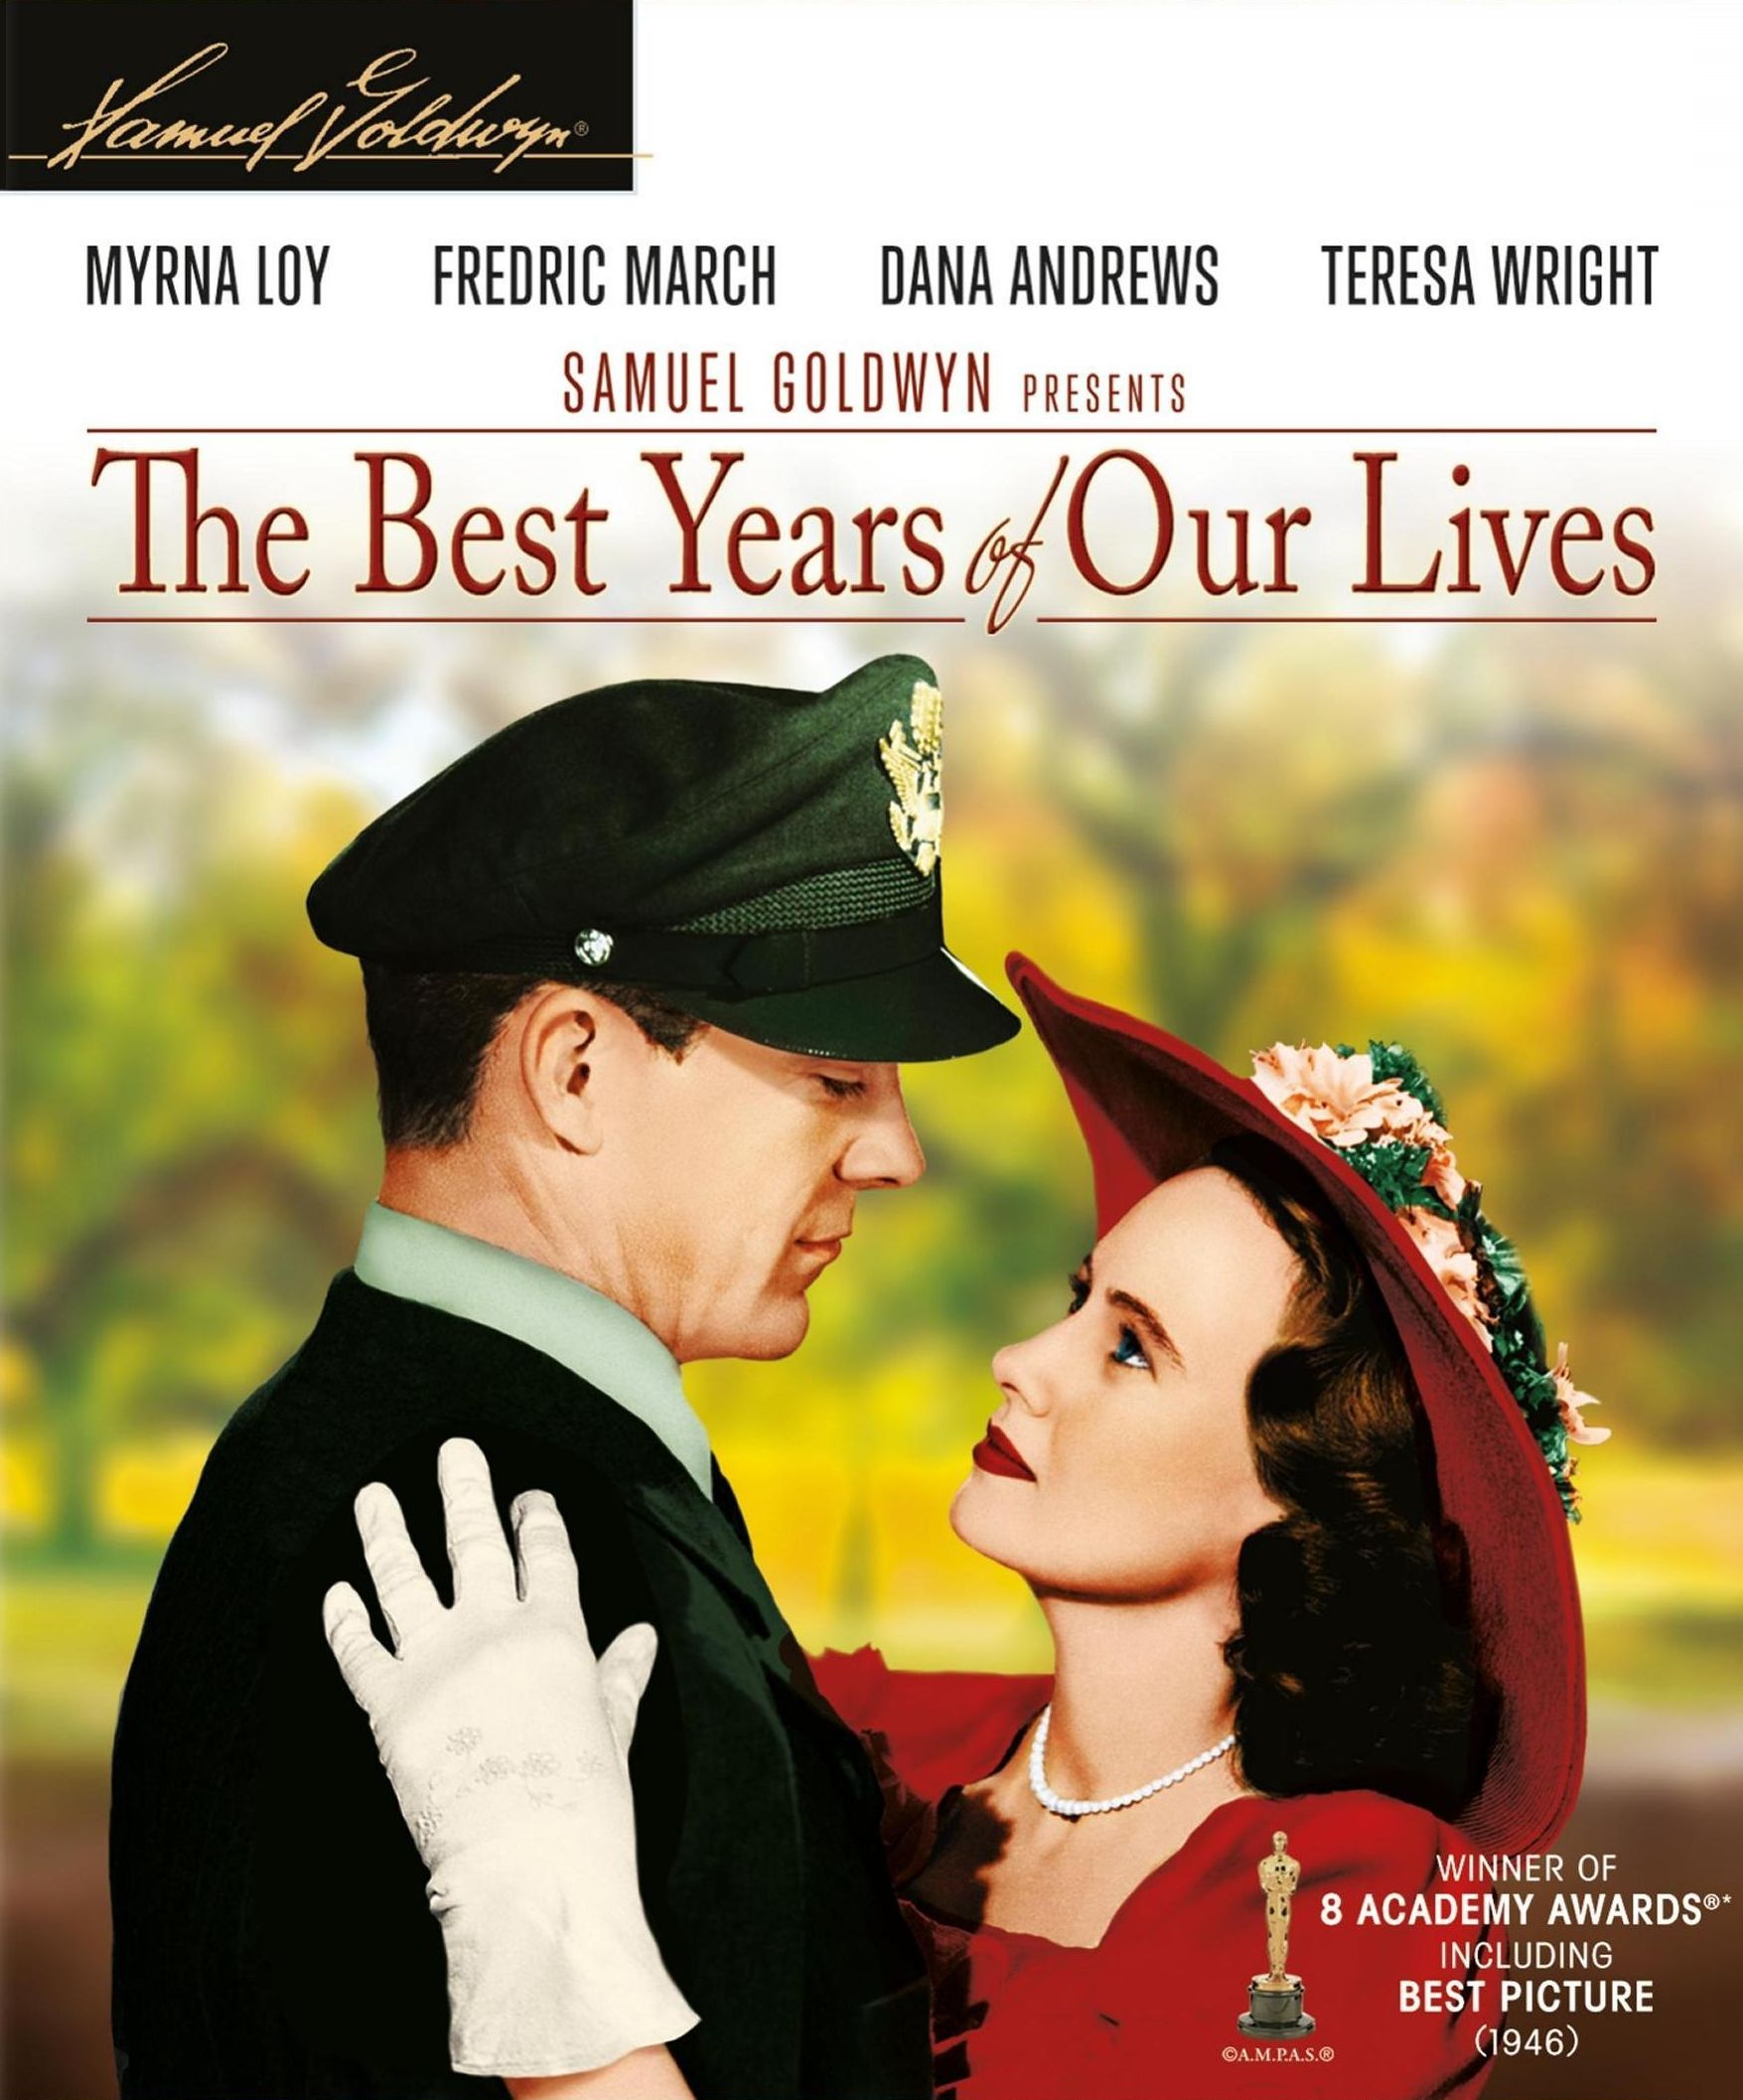 The Best Years of Our Lives - William Wyler - 1946 - starring Fredric March, Dana Andrews, Harold Russell, Teresa Wright and Myrna Loy #williamwyler The Best Years of Our Lives - William Wyler - 1946 - starring Fredric March, Dana Andrews, Harold Russell, Teresa Wright and Myrna Loy #williamwyler